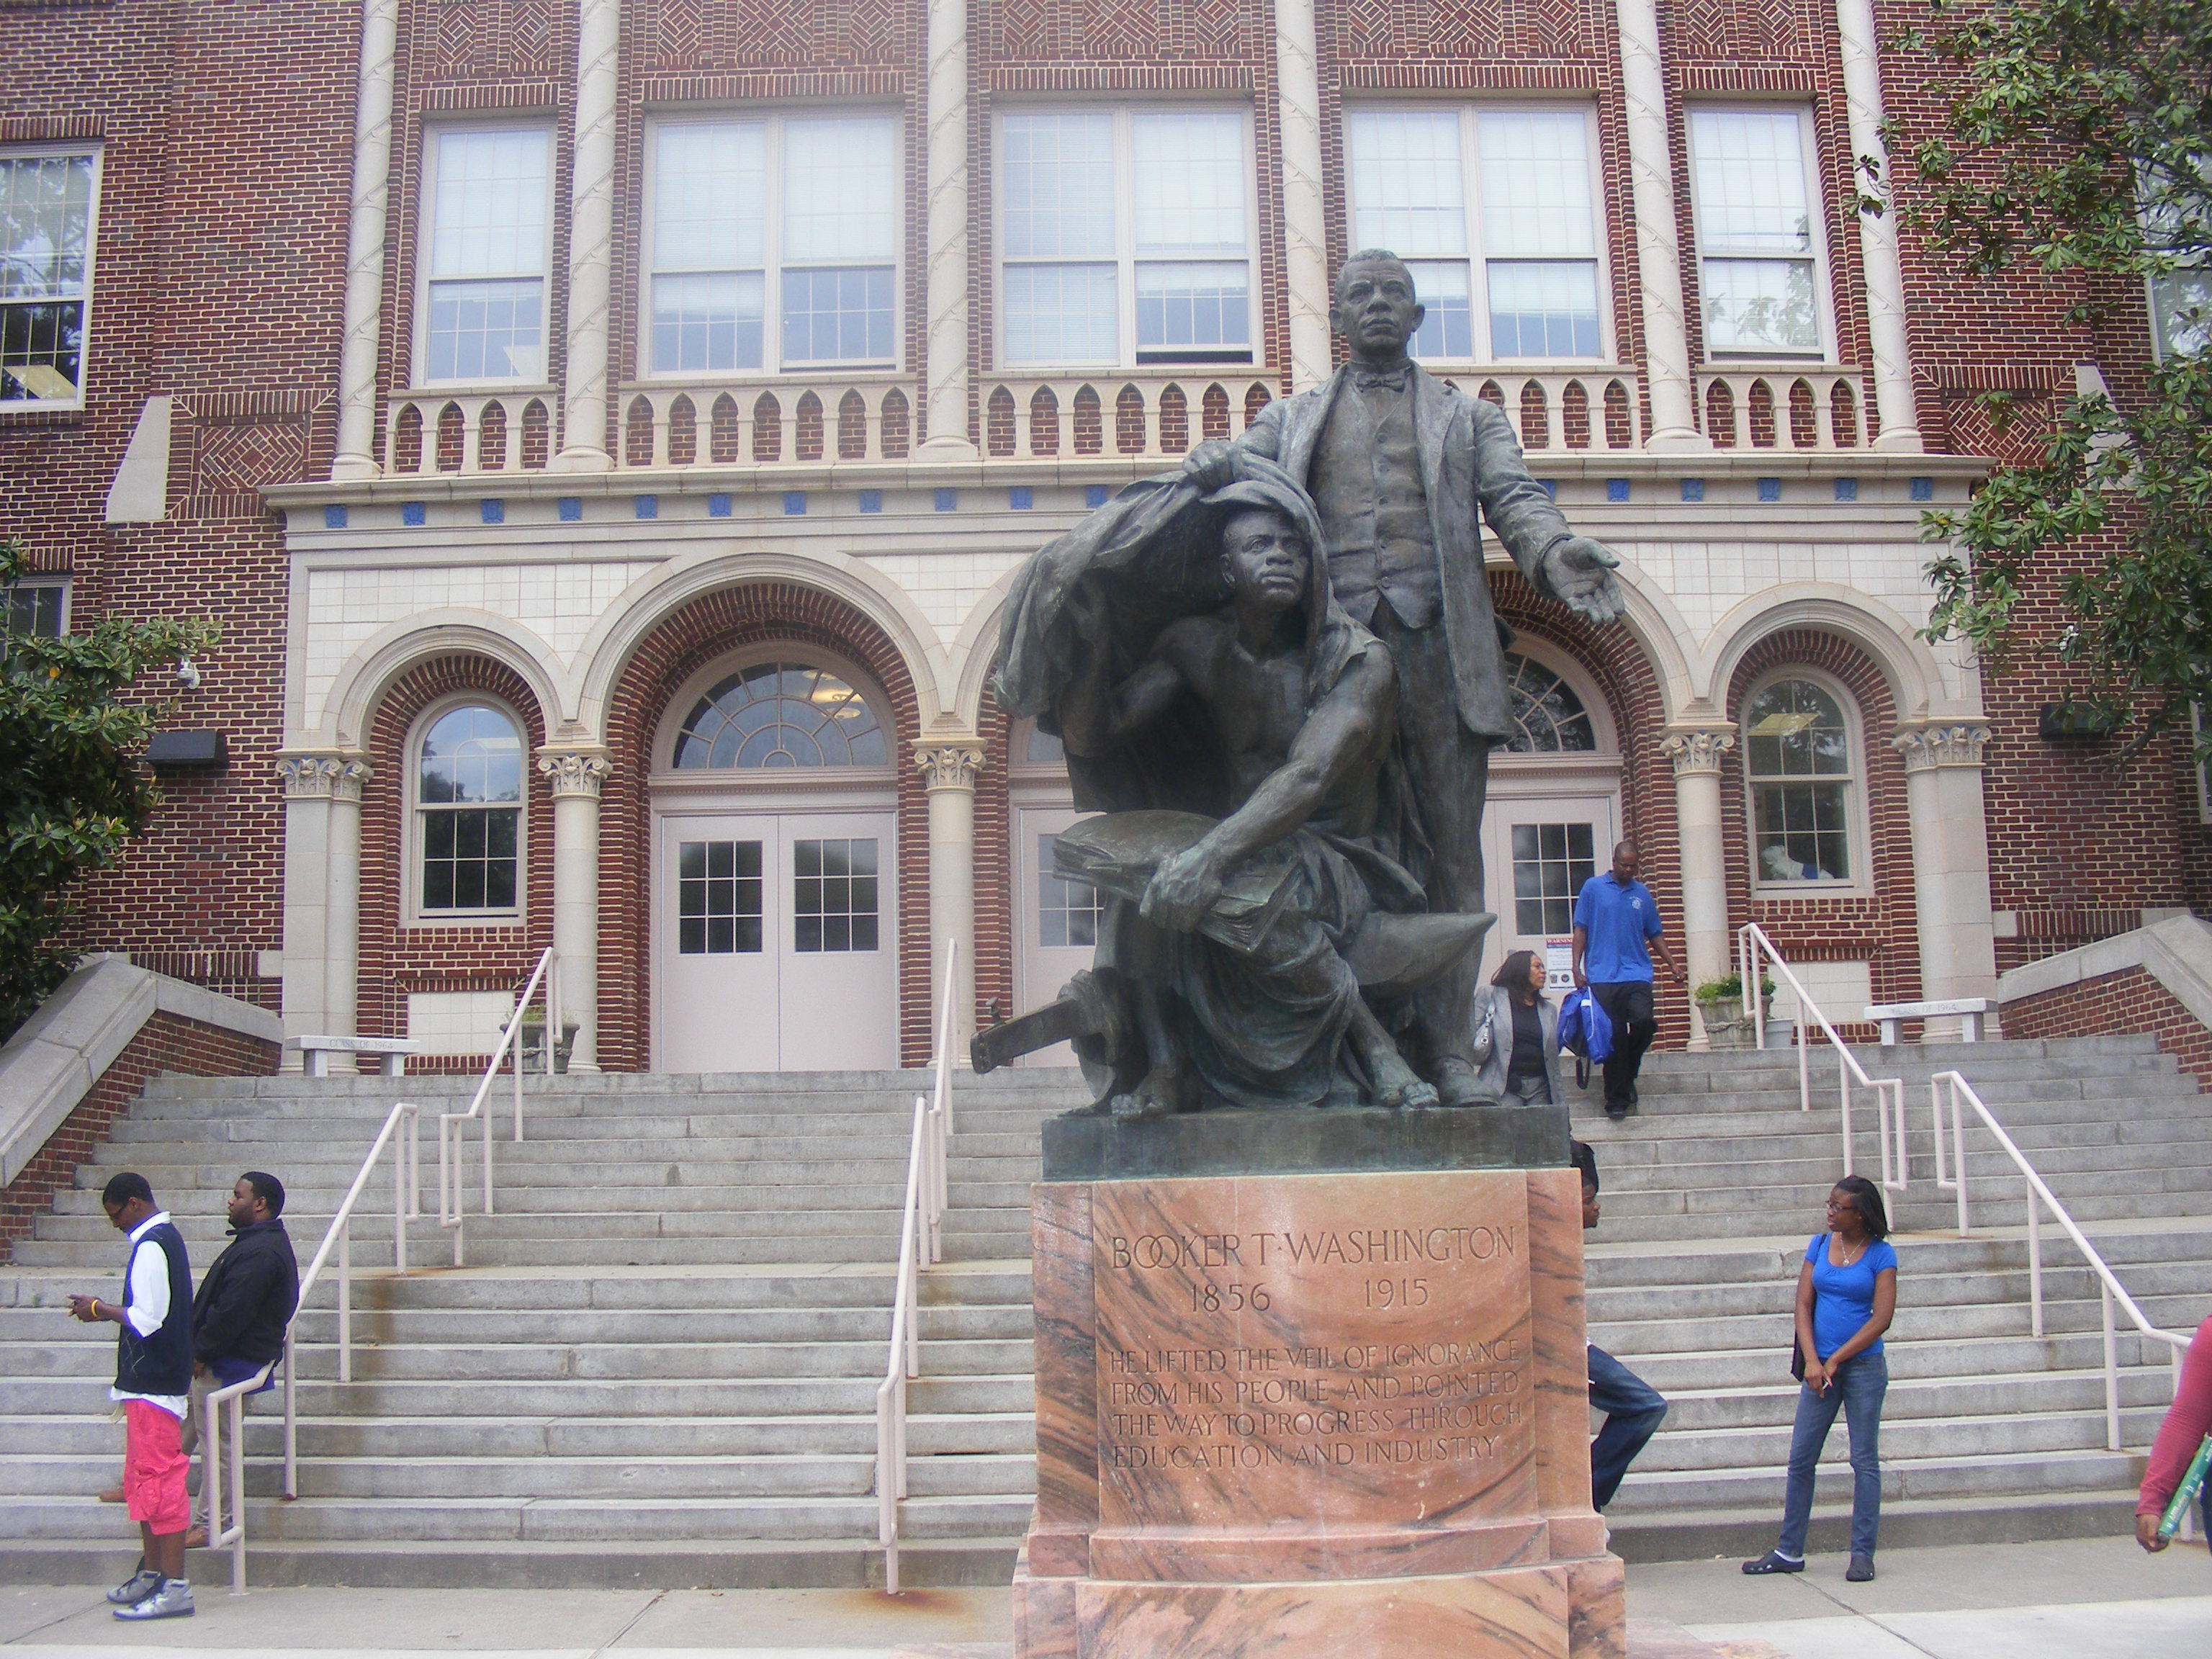 King's high school alma mater was named after African-American scholar Booker T. Washington.